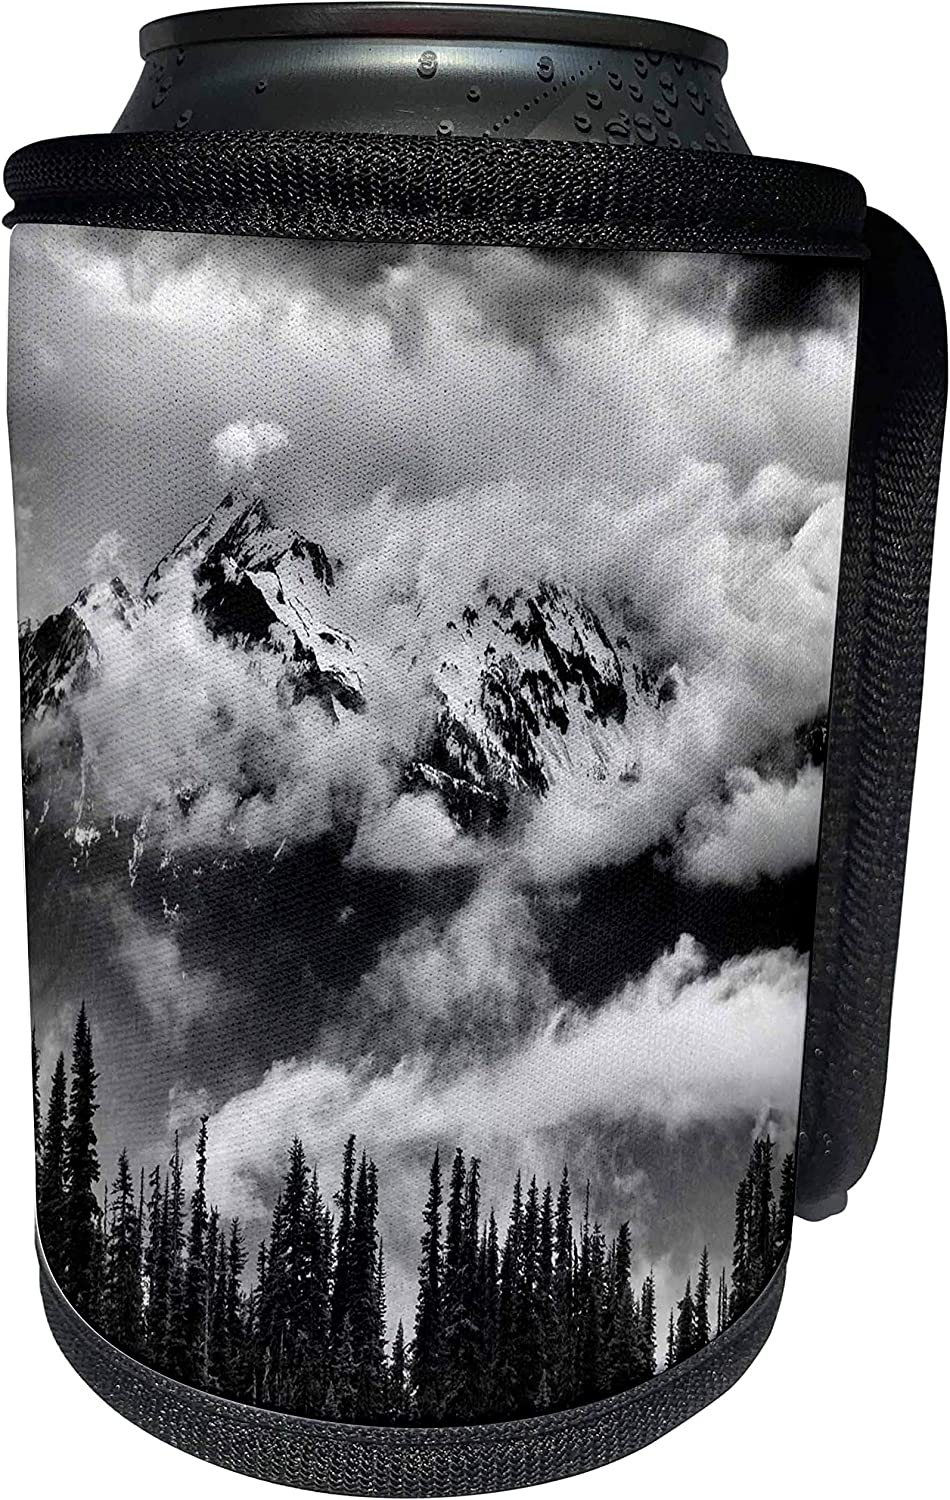 3dRose Danita Delimont - Olympic National Park - Washington State, Olympic National Park, Mount Carrie and Glacier - Can Cooler Bottle Wrap (cc_251496_1)